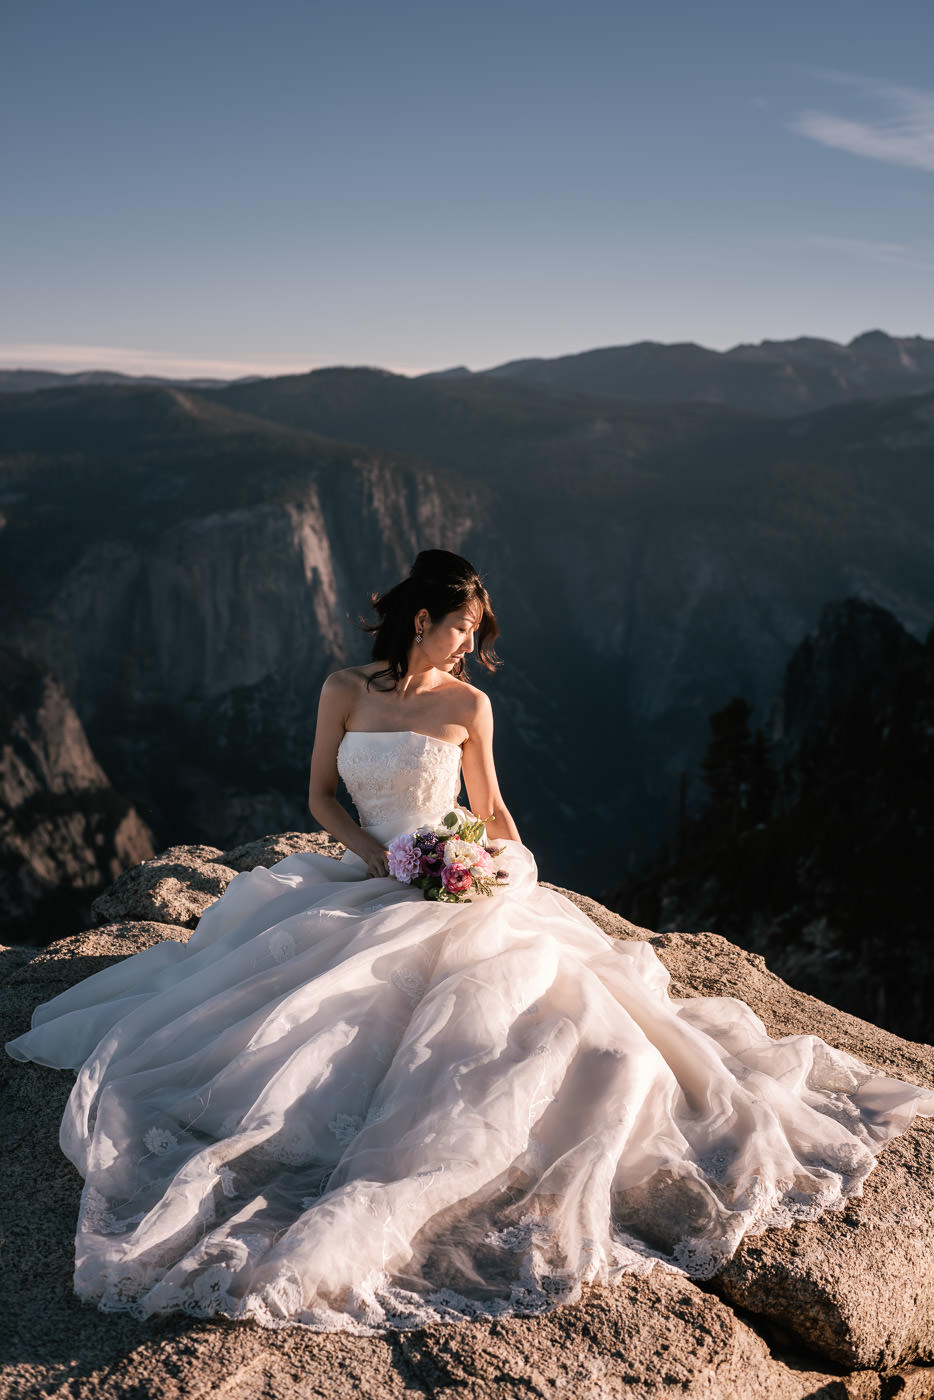 Best outdoor elopement photographer in the United States.